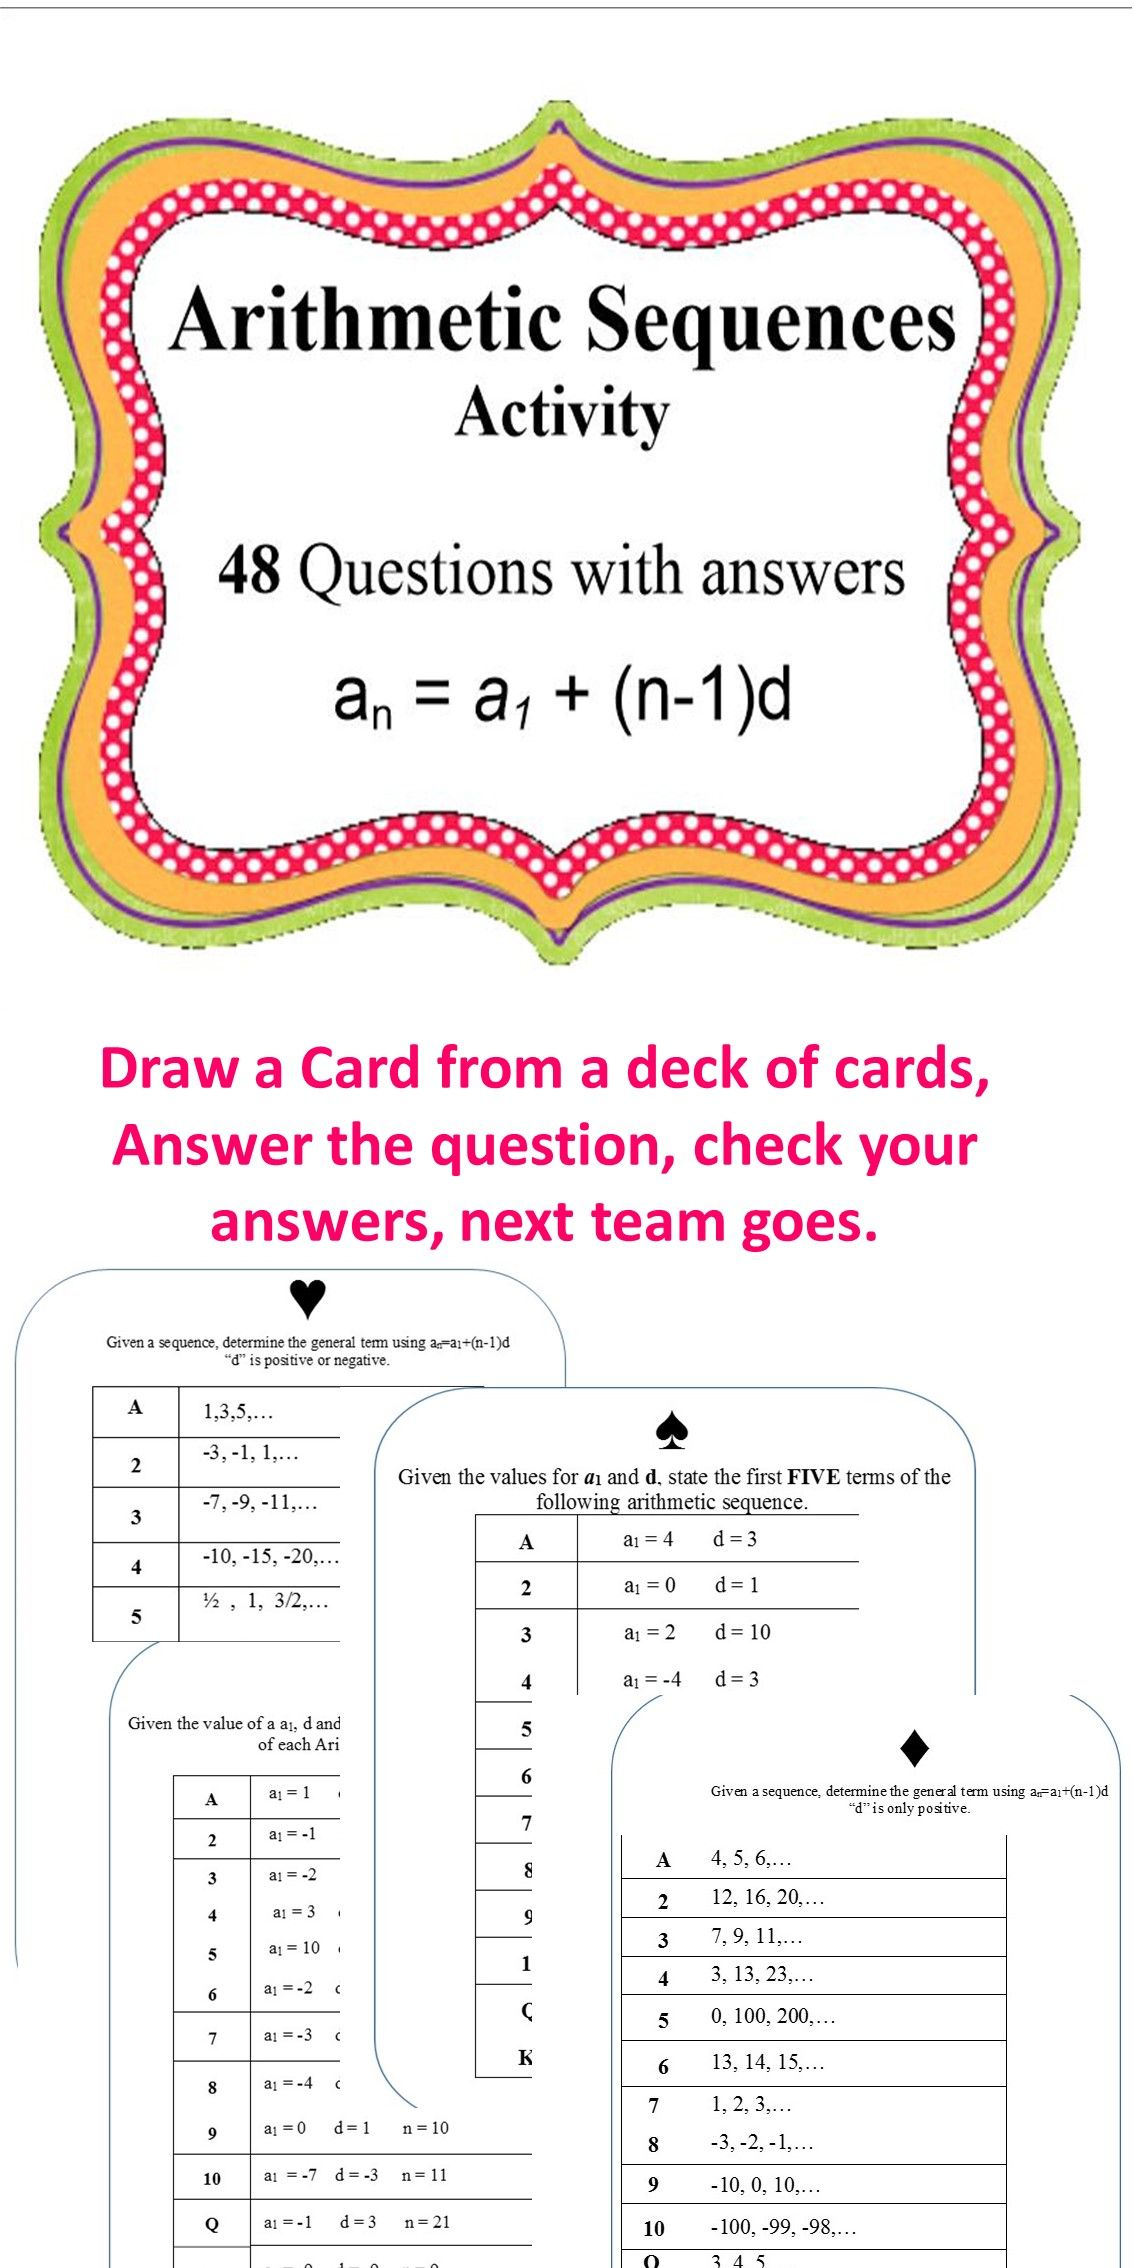 Worksheet Teaching Aids Of Arithmetic Progressions arithmetic sequences hsf bf a 1 2 editable 48 this game has questions with answers included types of quesitons